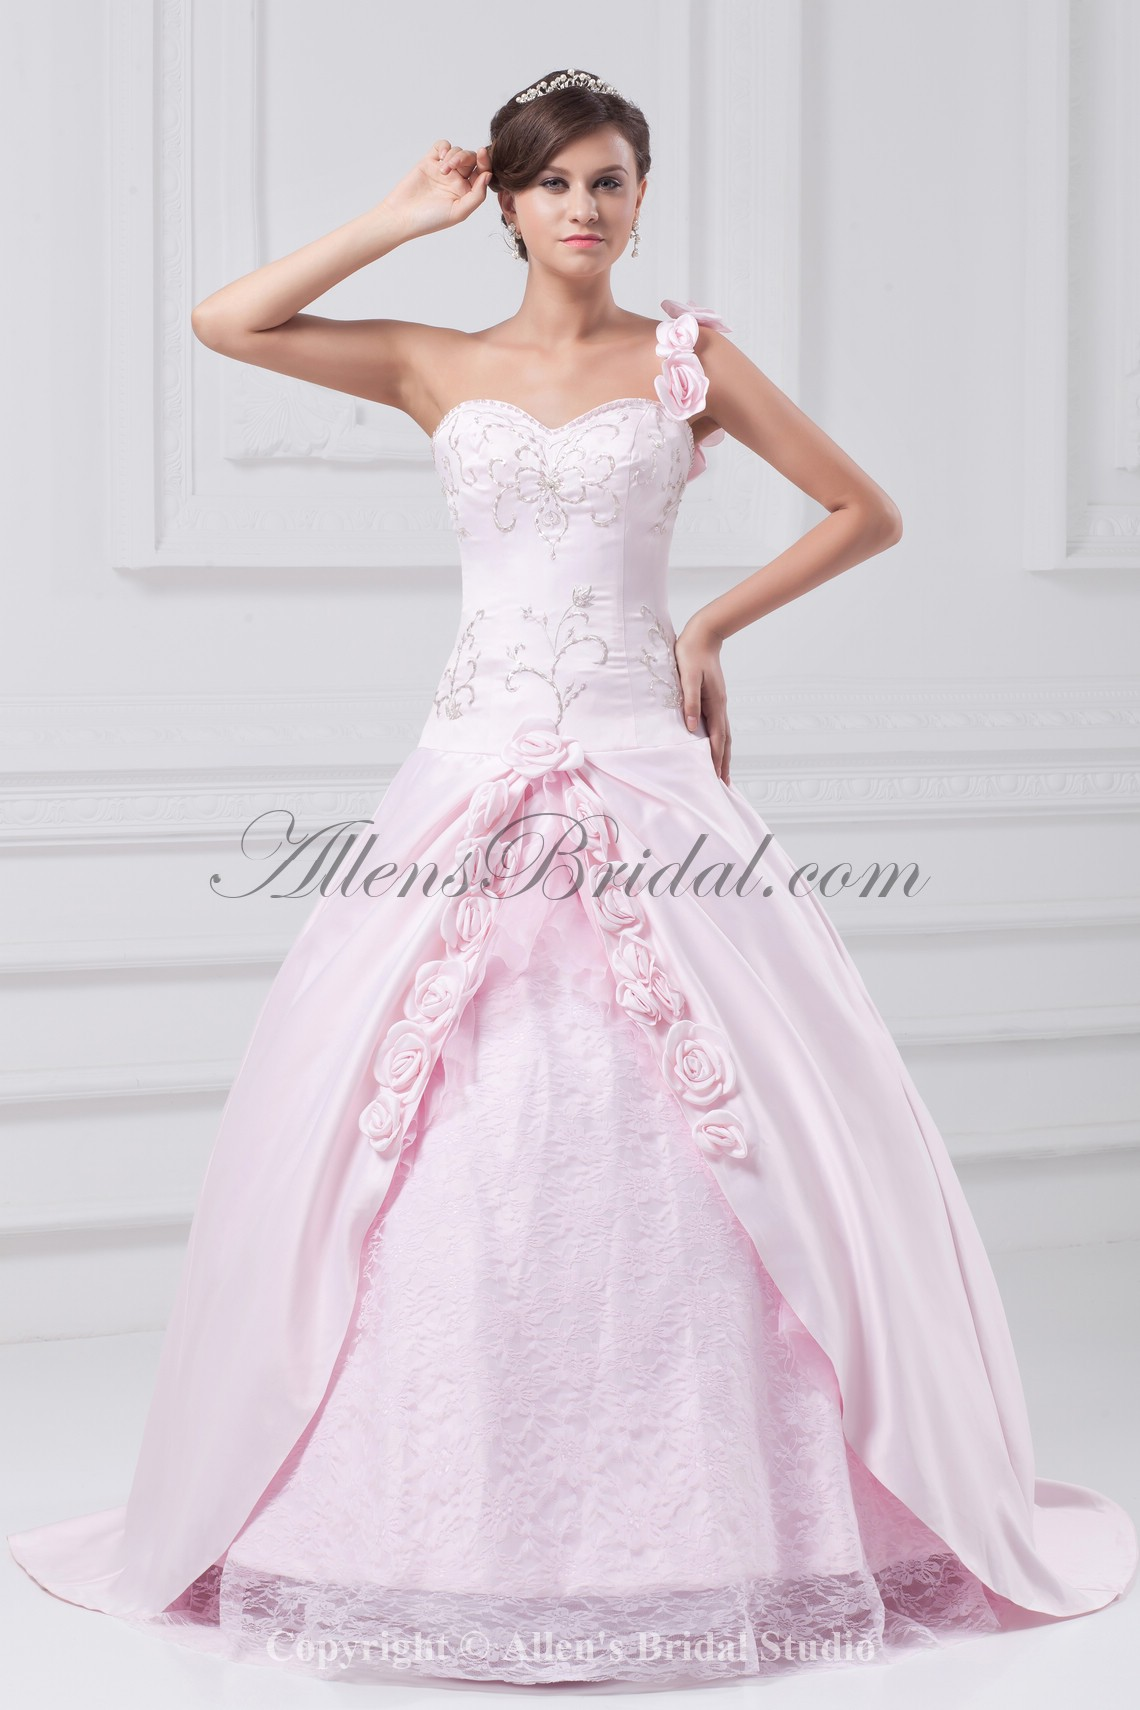 /869-6962/satin-sweetheart-neckline-floor-length-ball-gown-embroidered-prom-dress.jpg